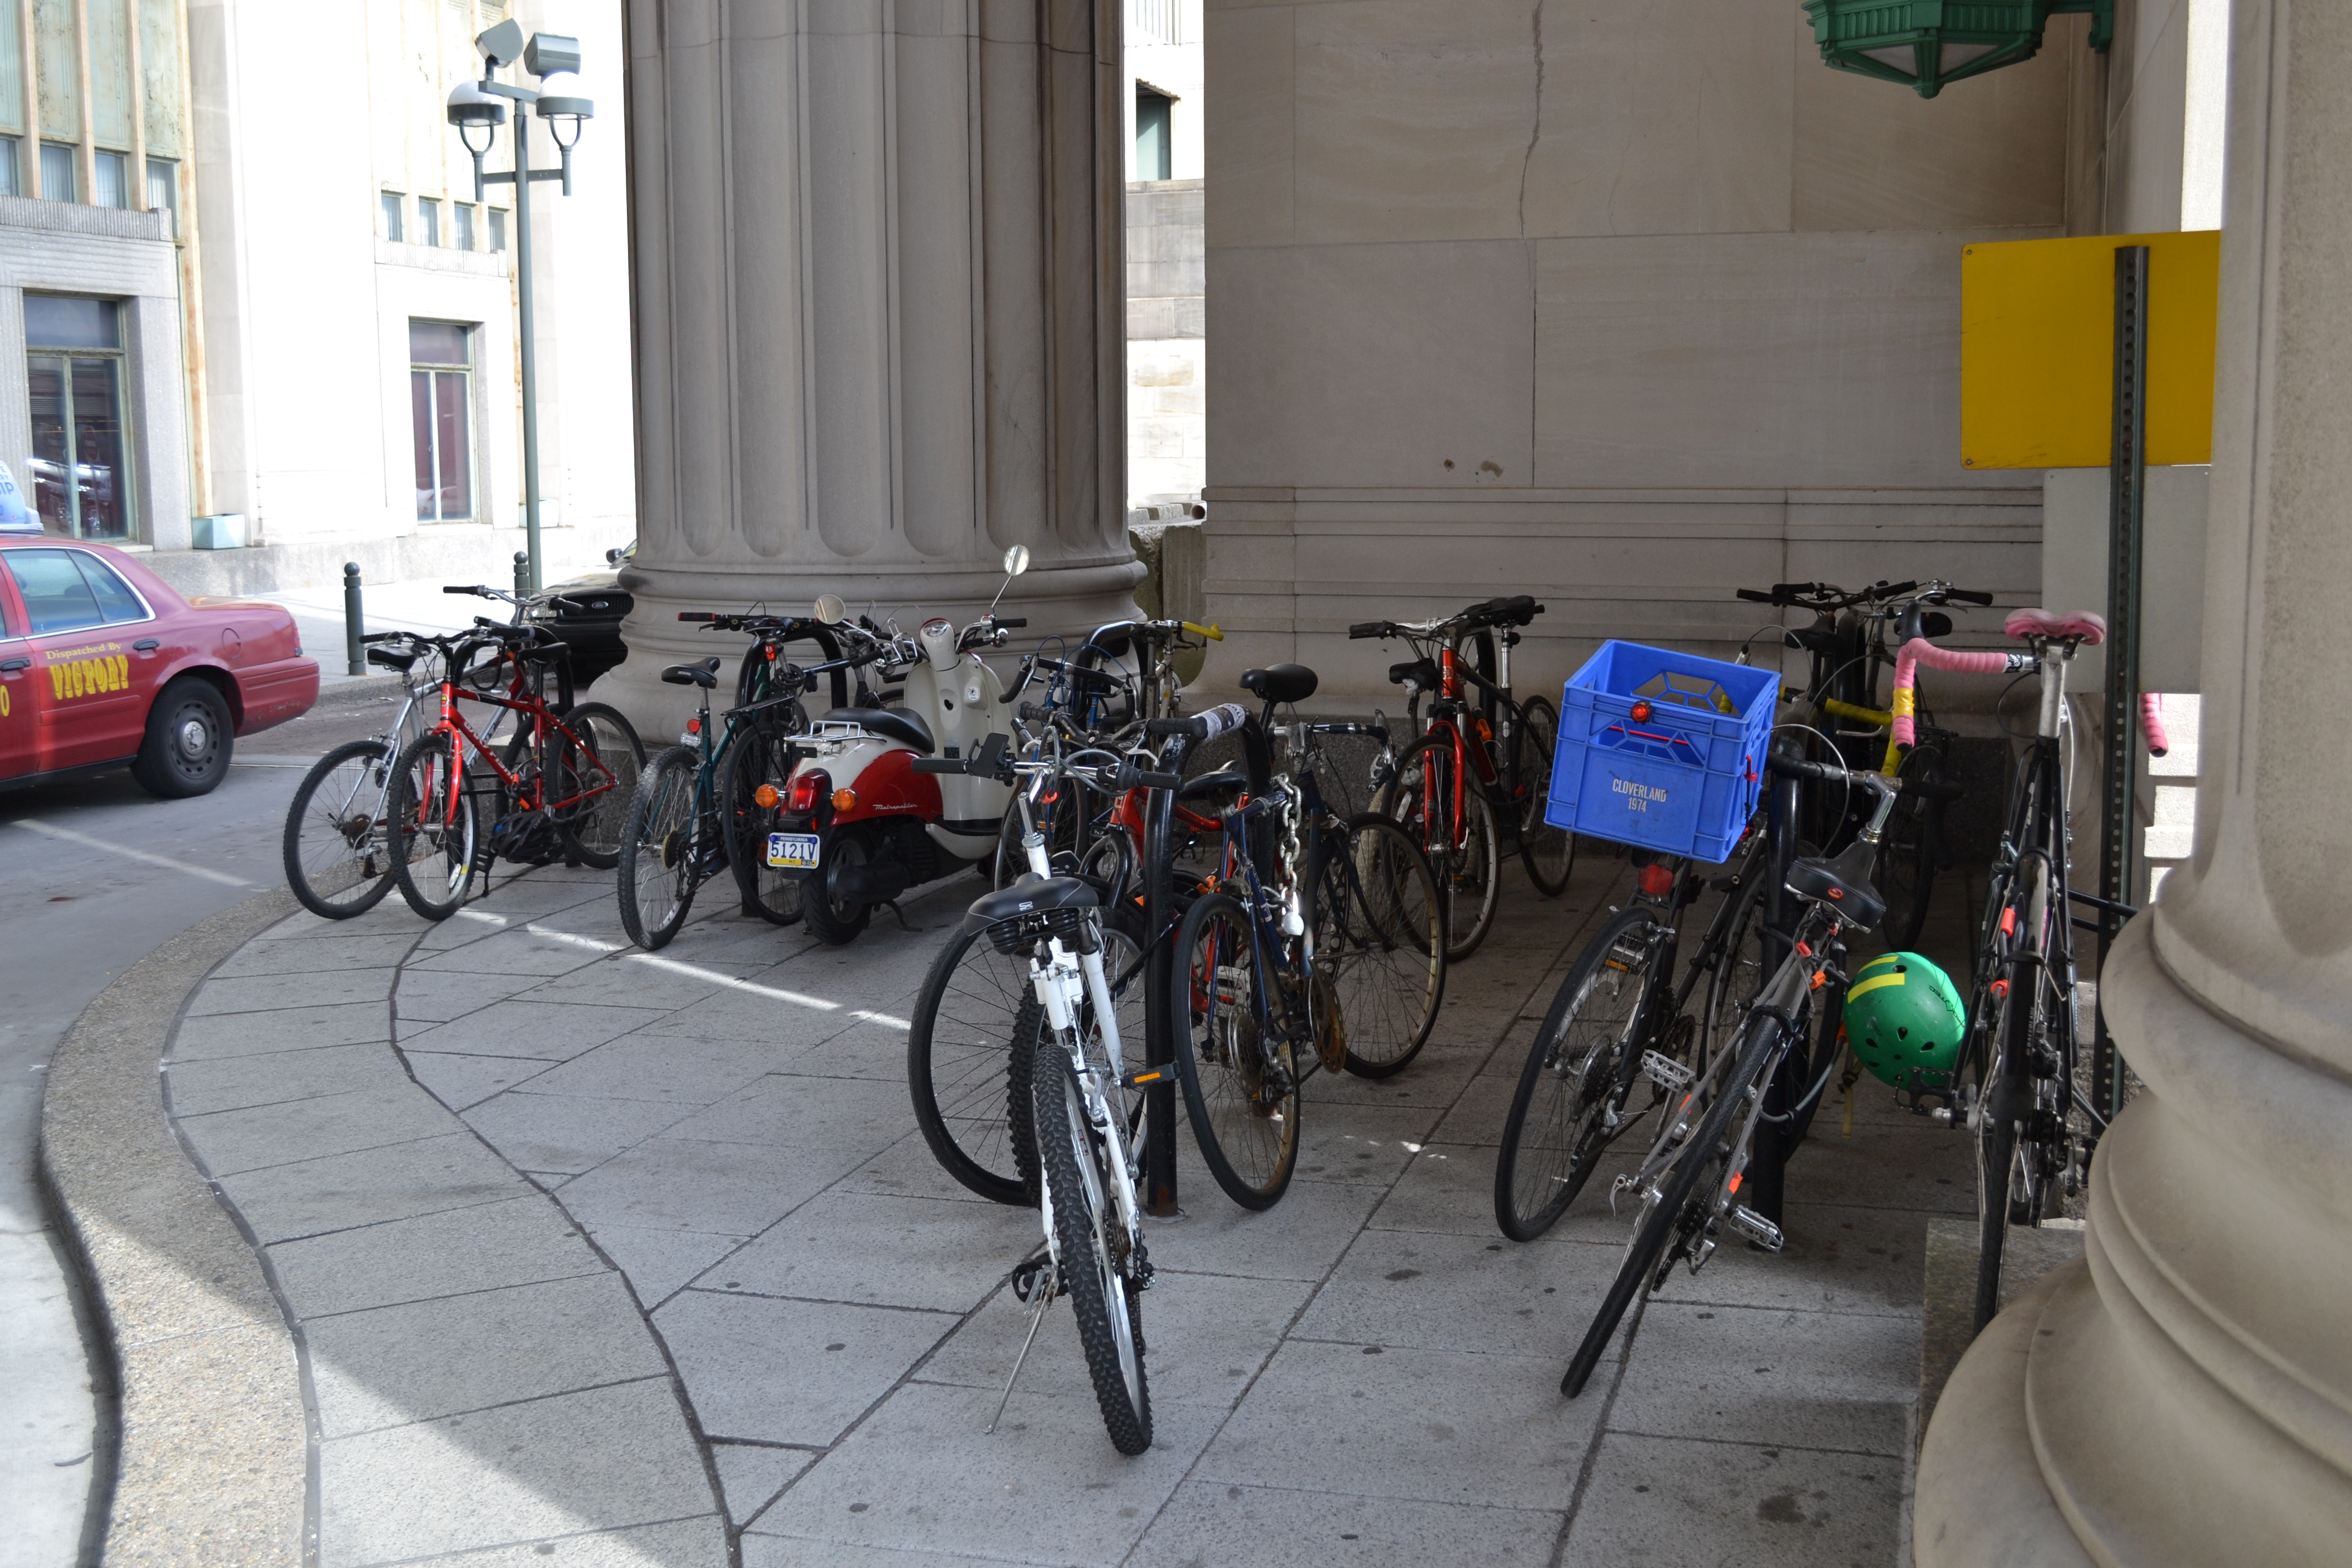 During the week, all bike racks around 30th Street Station fill quickly